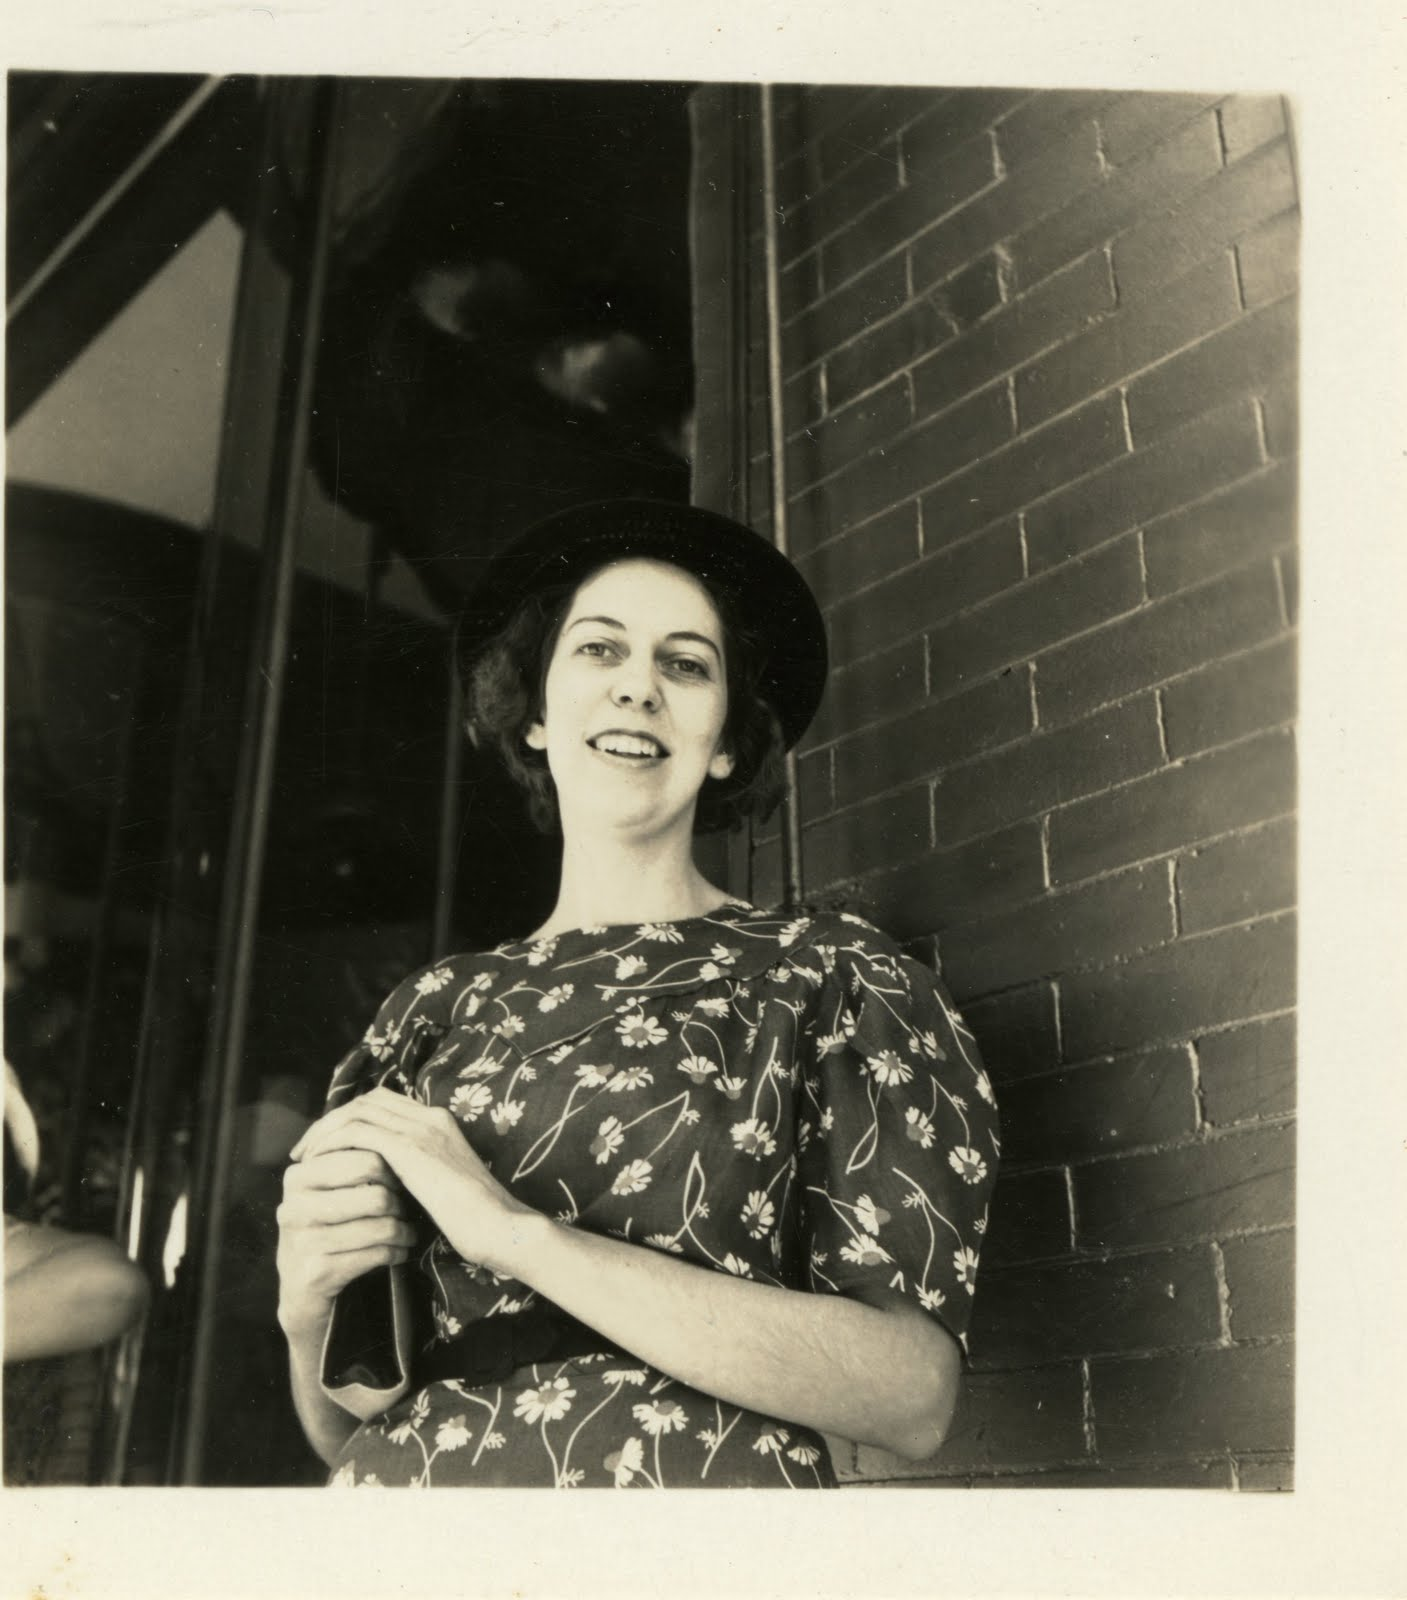 Eudora Welty And I Quot A Long Intimacy Between Strangers Quot